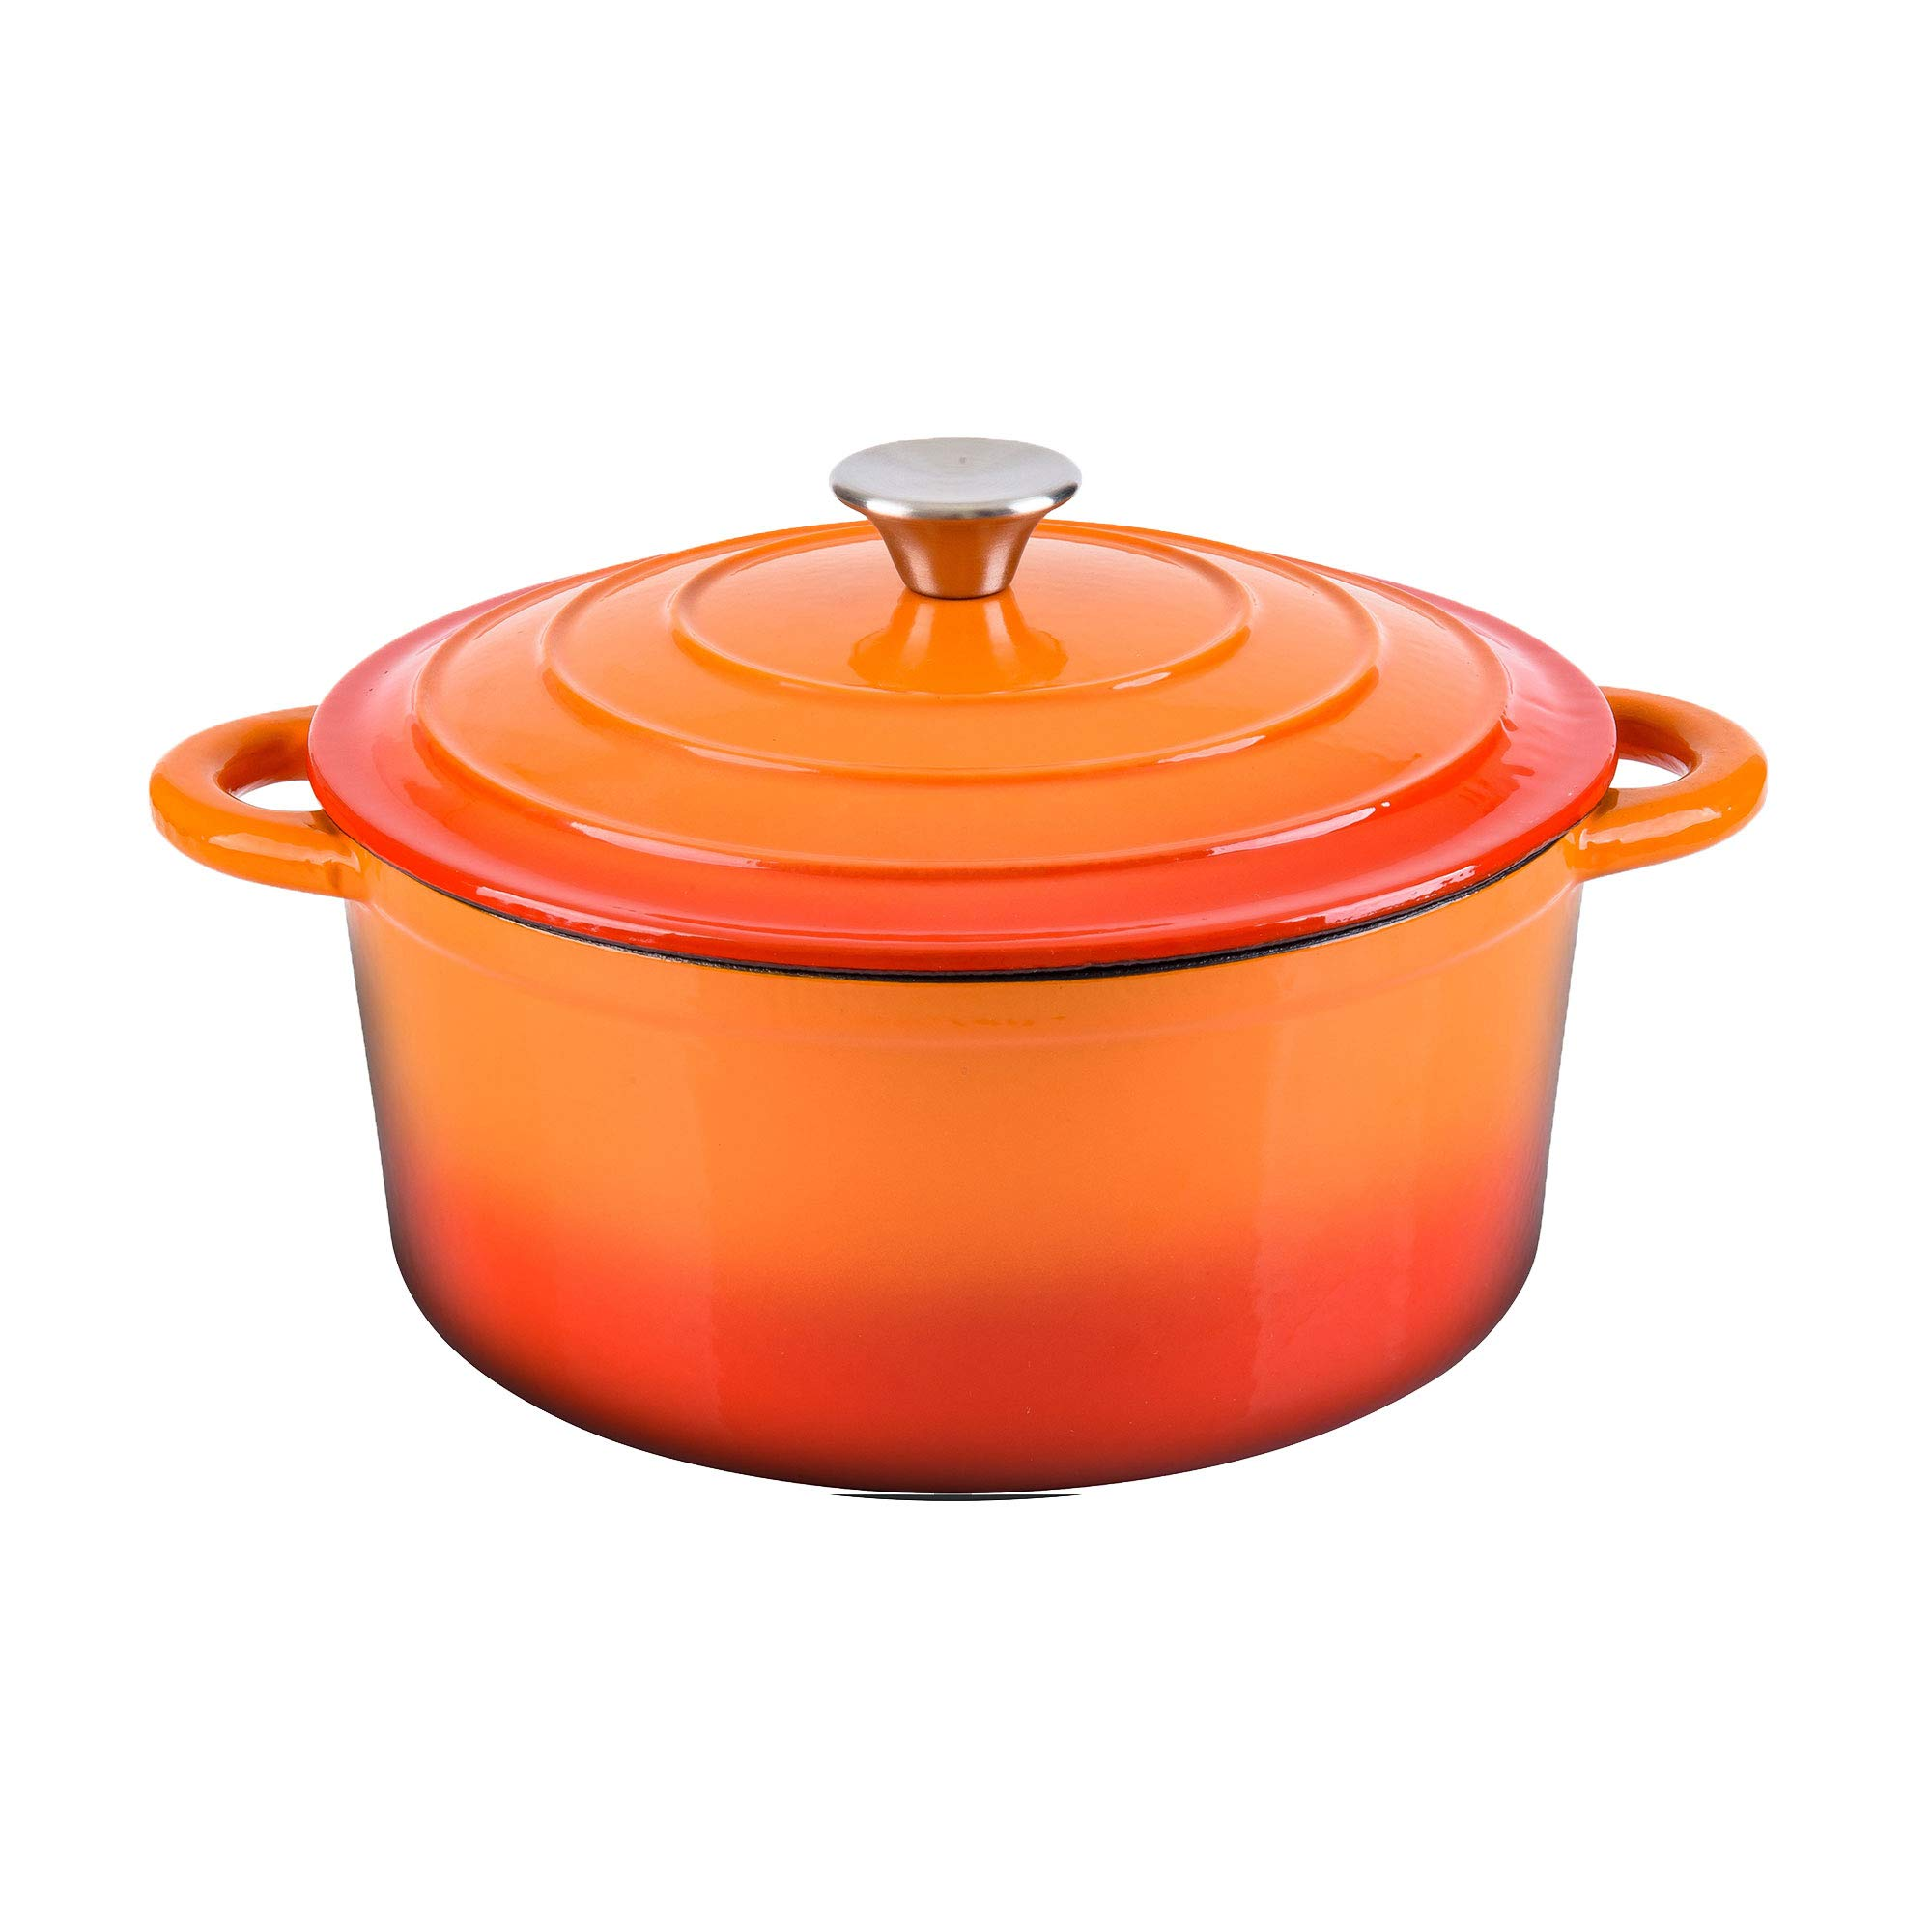 Hamilton Beach 5.5 Quart Enameled Cast Iron Covered Round Dutch Oven Pot, Orange